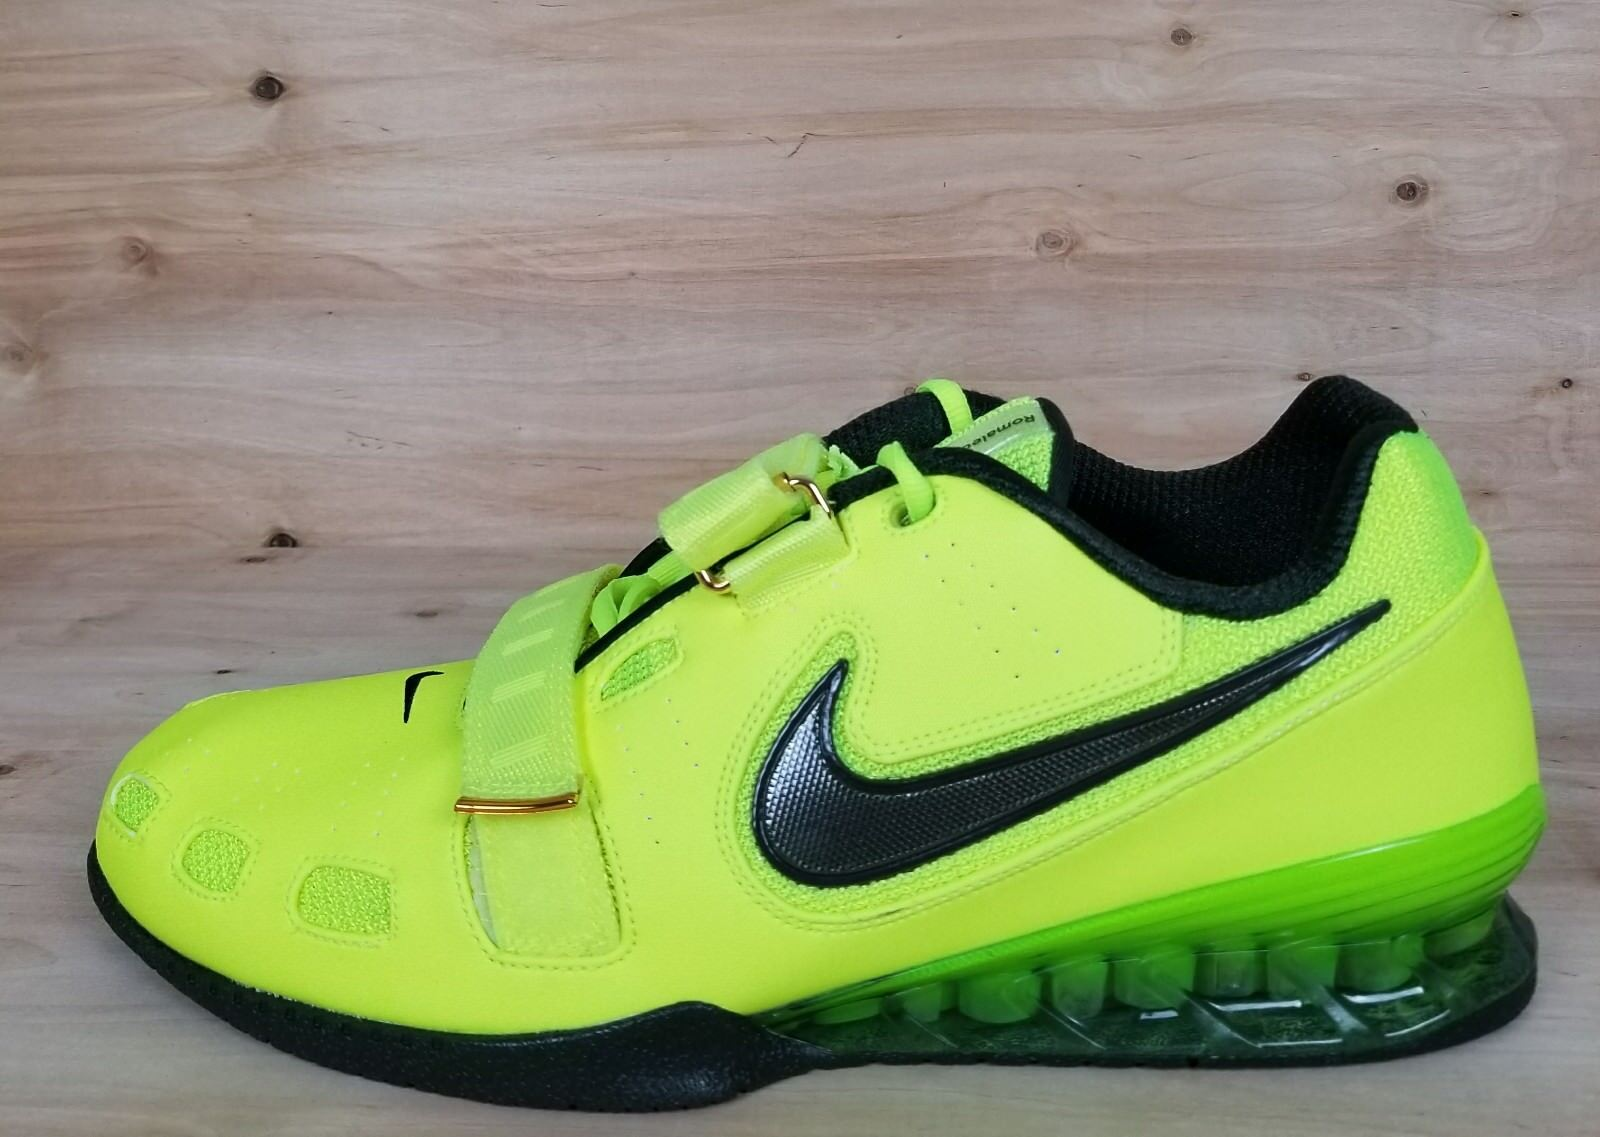 NIKE ROMALEOS II 700] 2 WEIGHTLIFTING SHOES [476927 700] II VOLT/BLACK MEN'S SZ: 991b0e